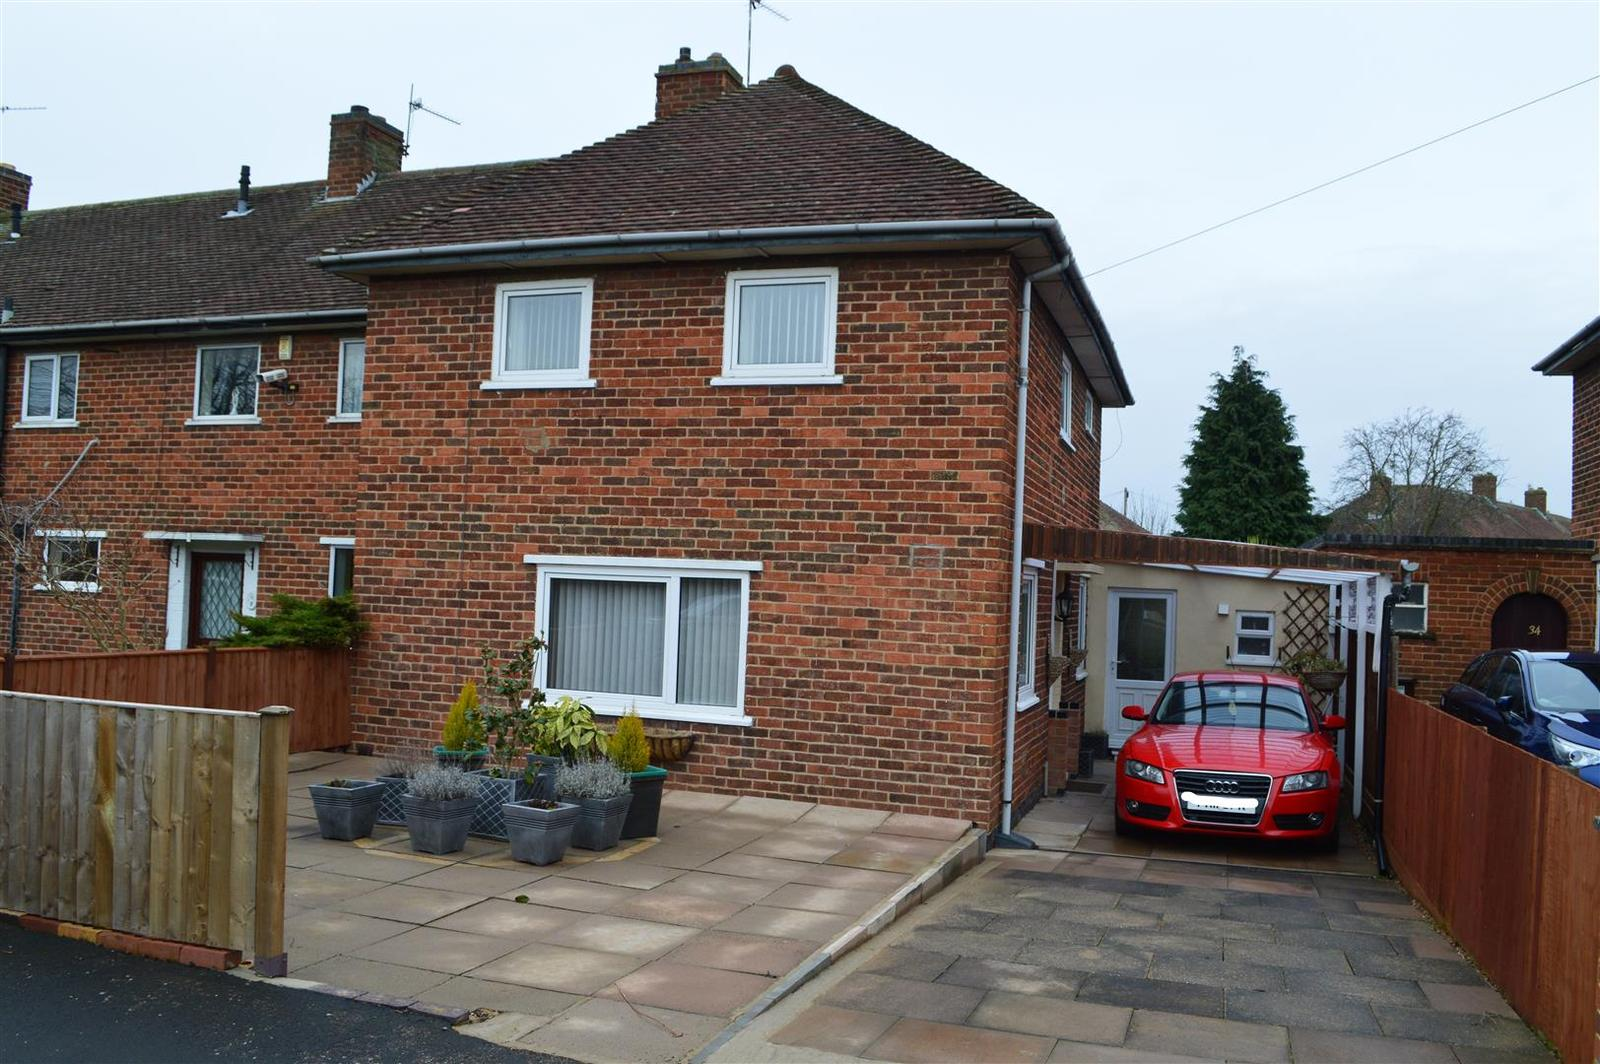 3 Bedrooms Detached House for sale in Poplar Road, Loughborough